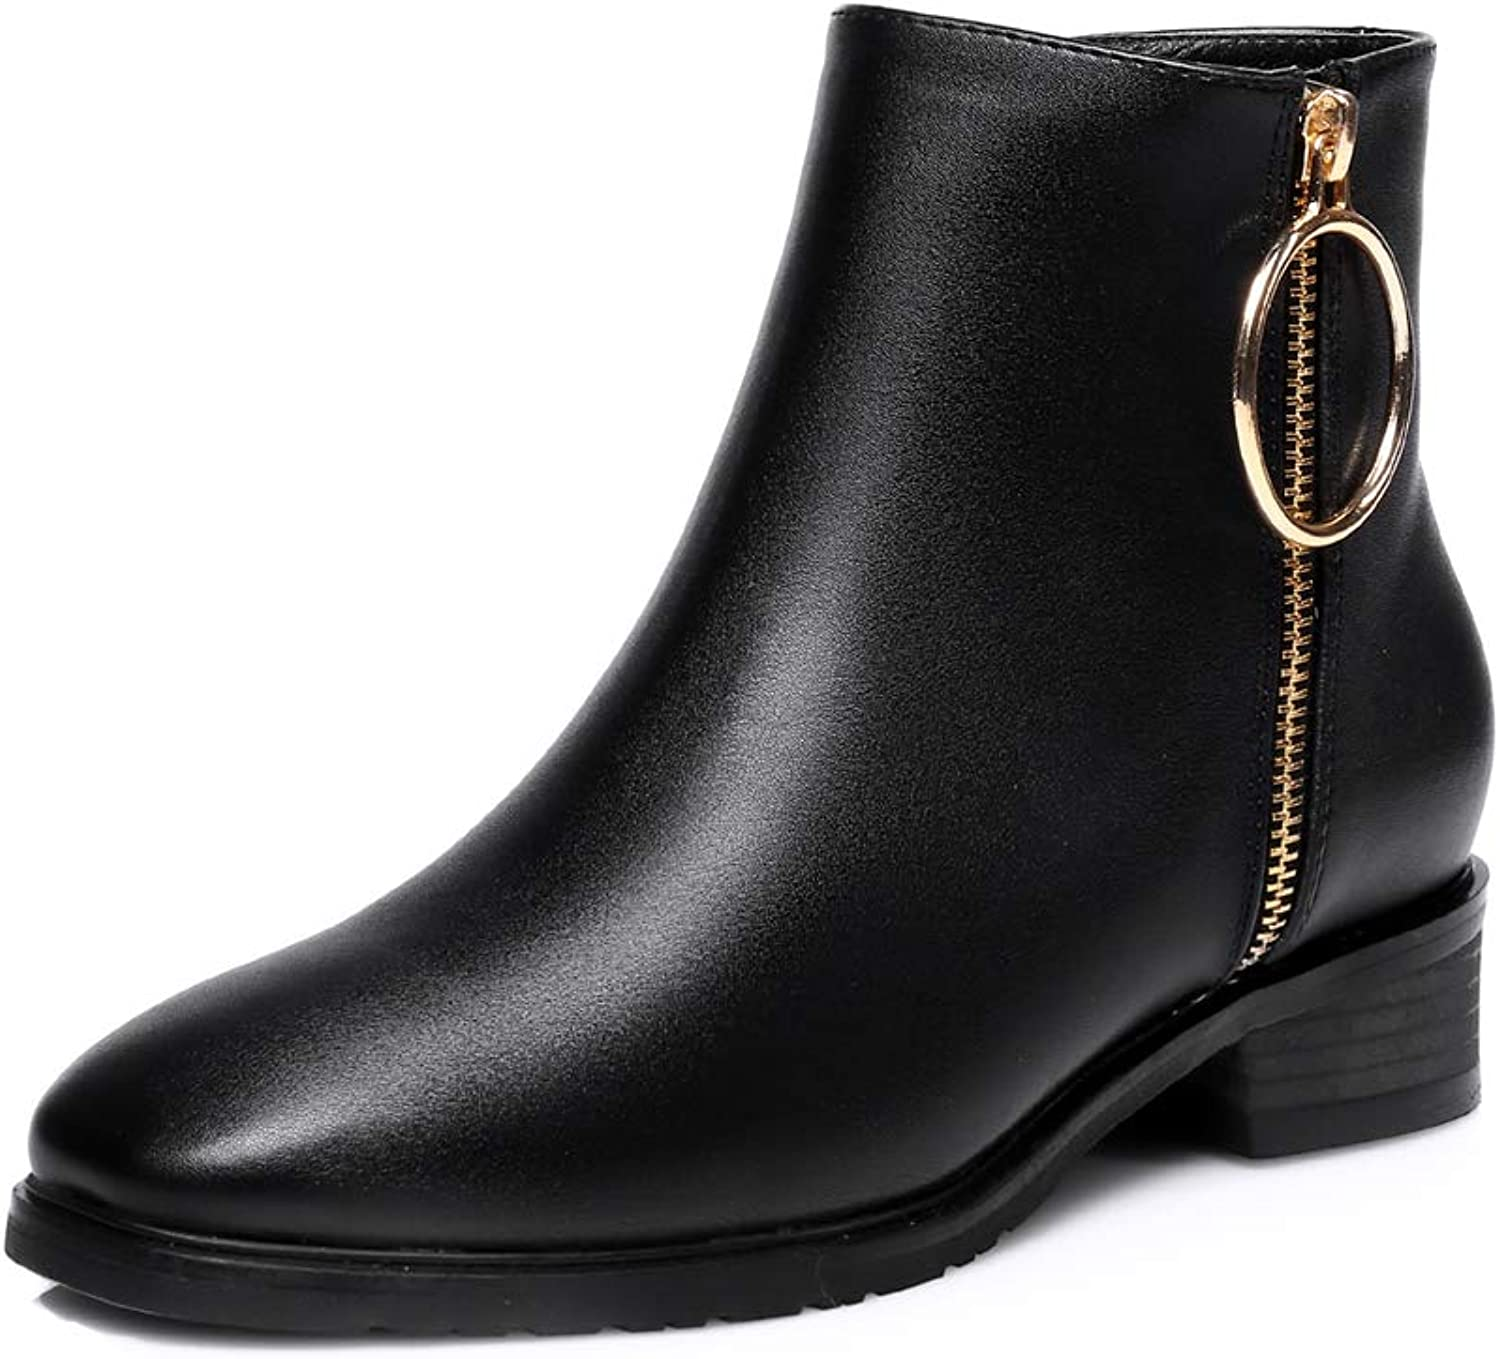 Believed Women PU Leather Flat Short Boots Female Vintage Martin Ankle Boots Women